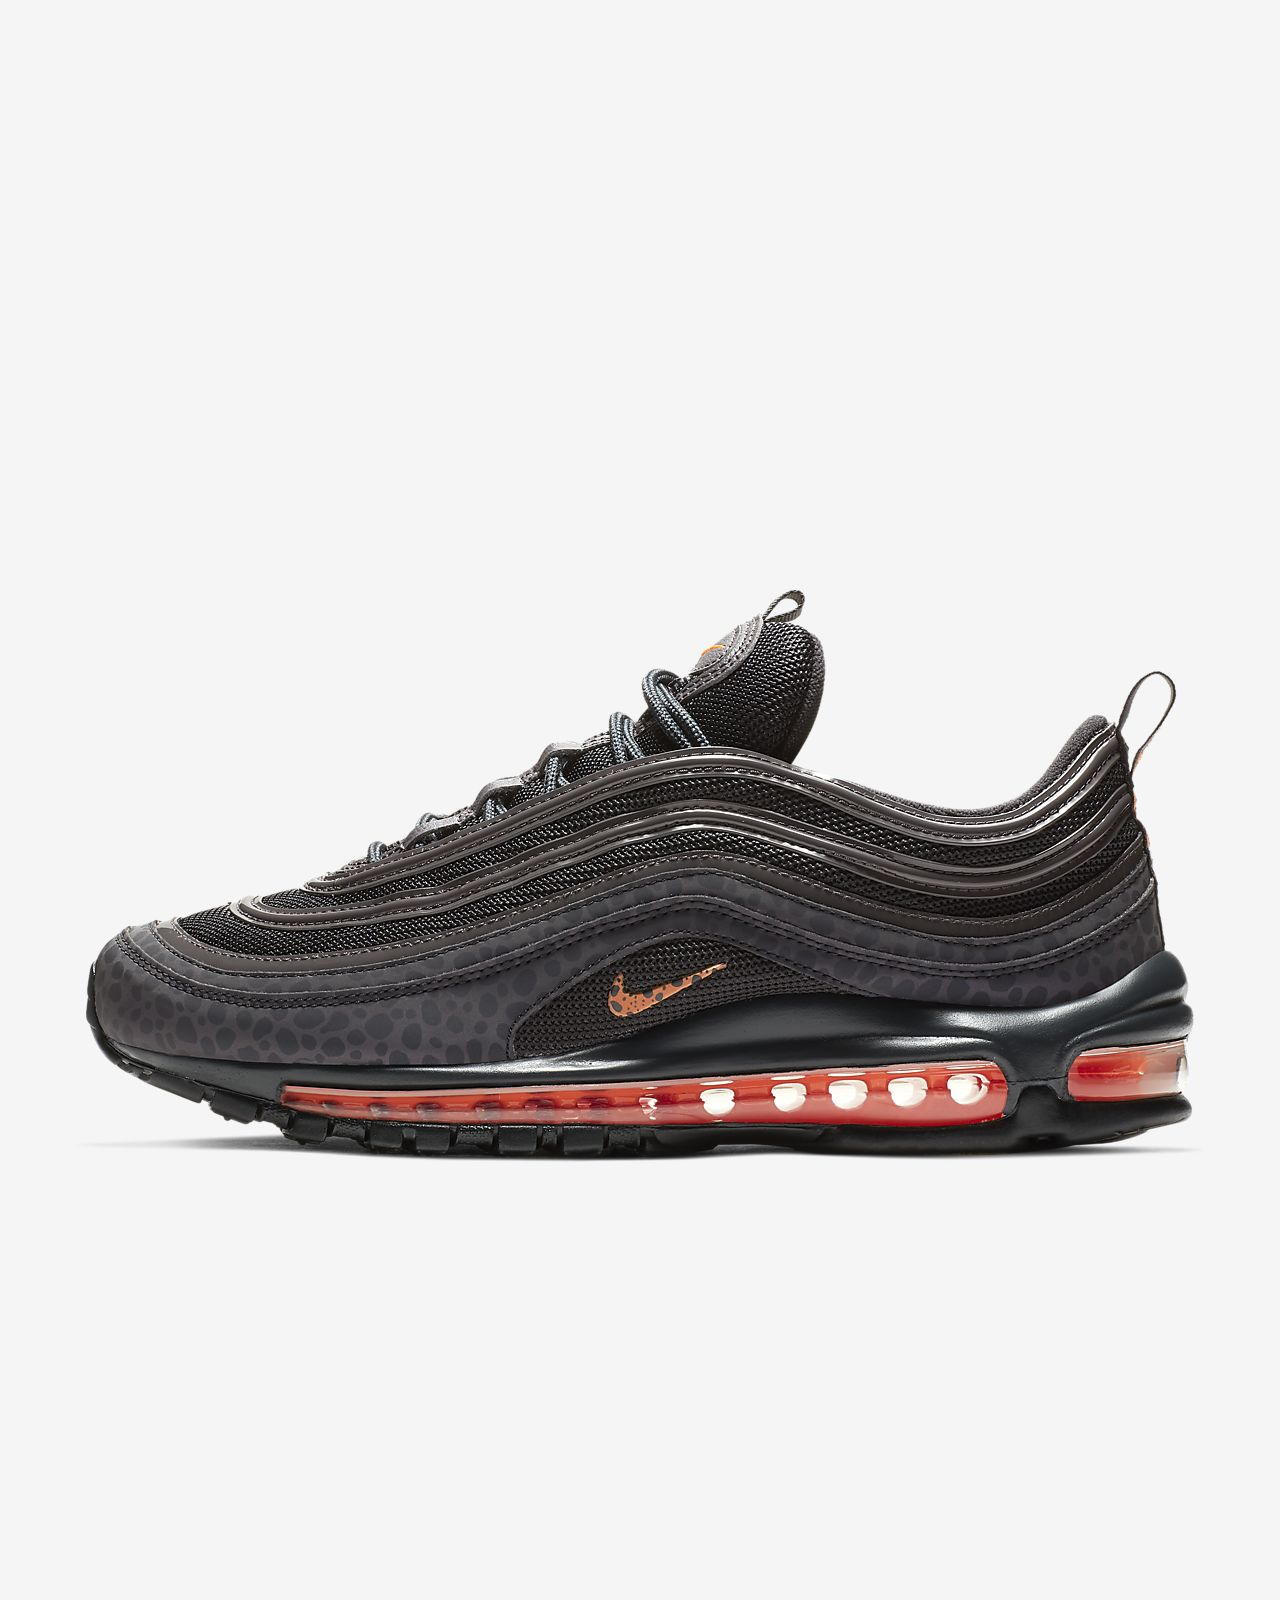 hot sale online e4bbf 590db ... Nike Air Max 97 SE Reflective Men s Shoe